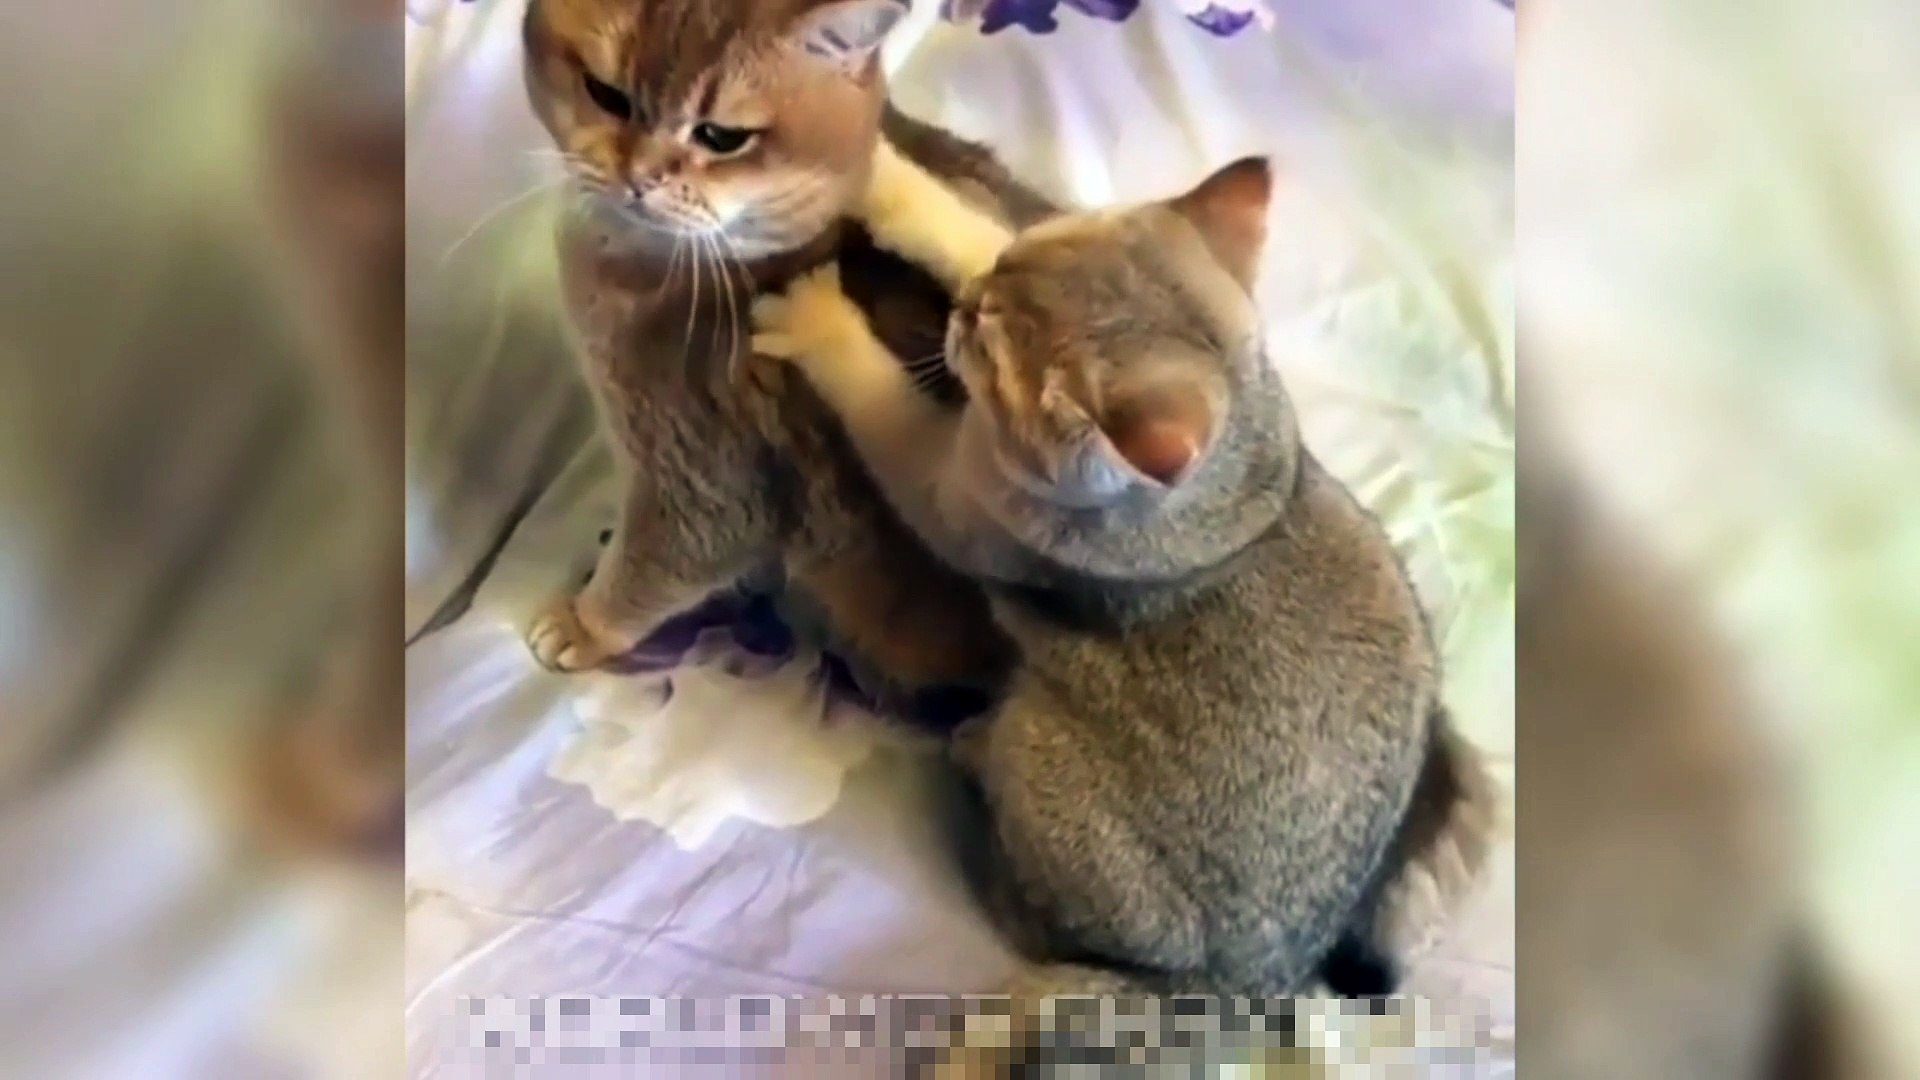 Funny Cat Video Moments Will Make You Smile 12 Video Dailymotion